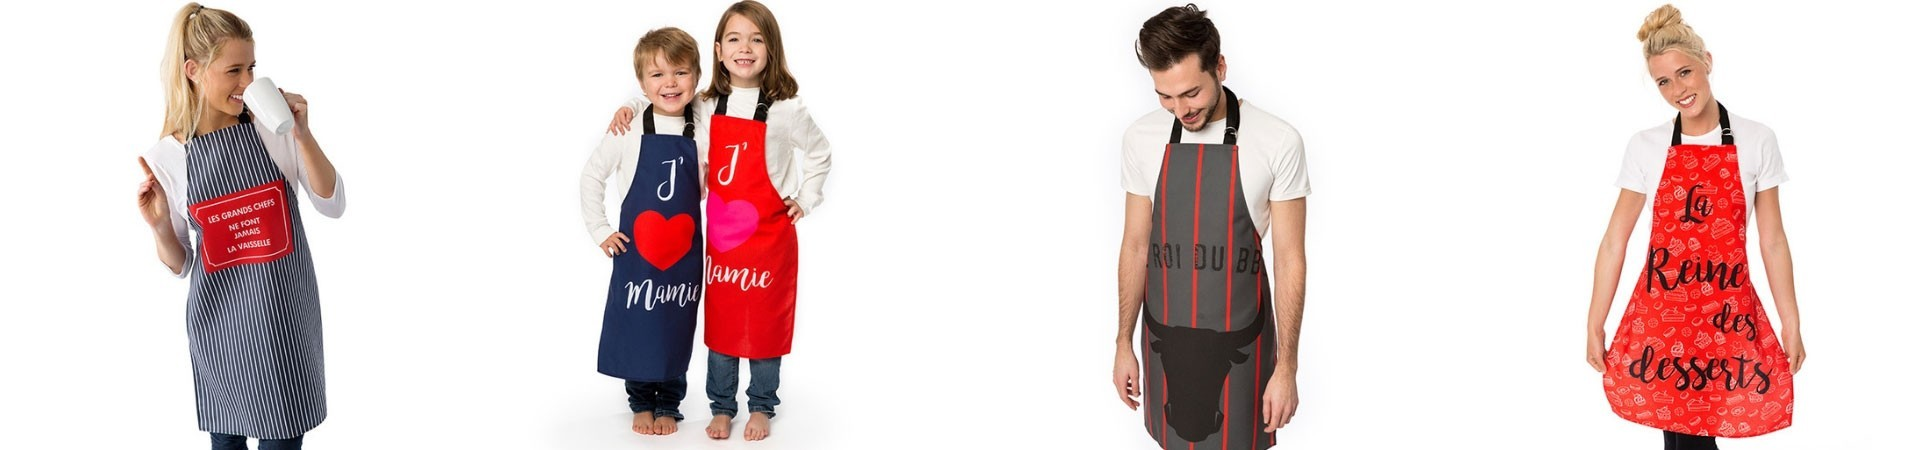 Funny and fashionable aprons for children